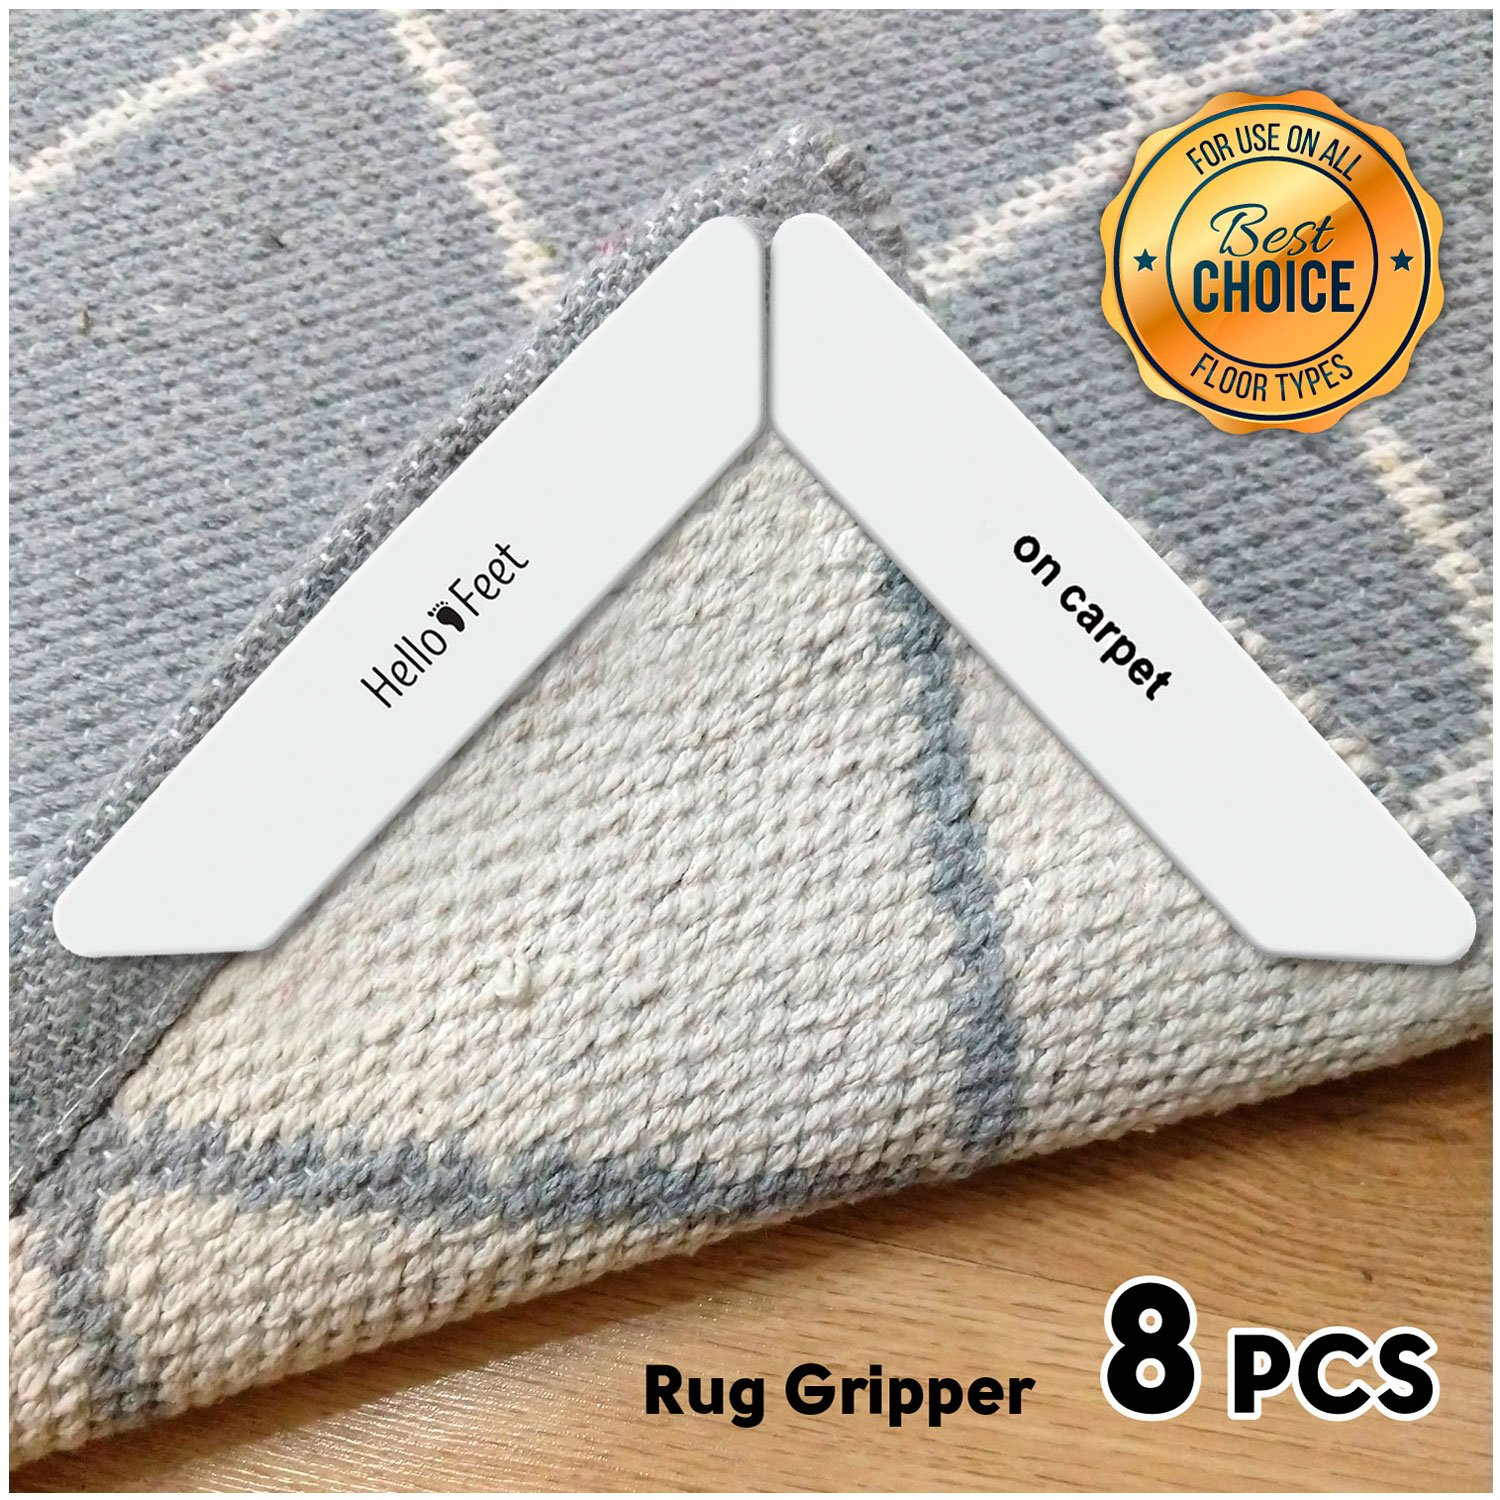 Hello Feet Rug Gripper - Anti Curling Non Slip Carpet Anchors (8 pcs) - Super Sticky Reusable Rug Holders - Perfect for Wood Tile Laminate Floor - Flatten Corners and Stop Slipping Pads